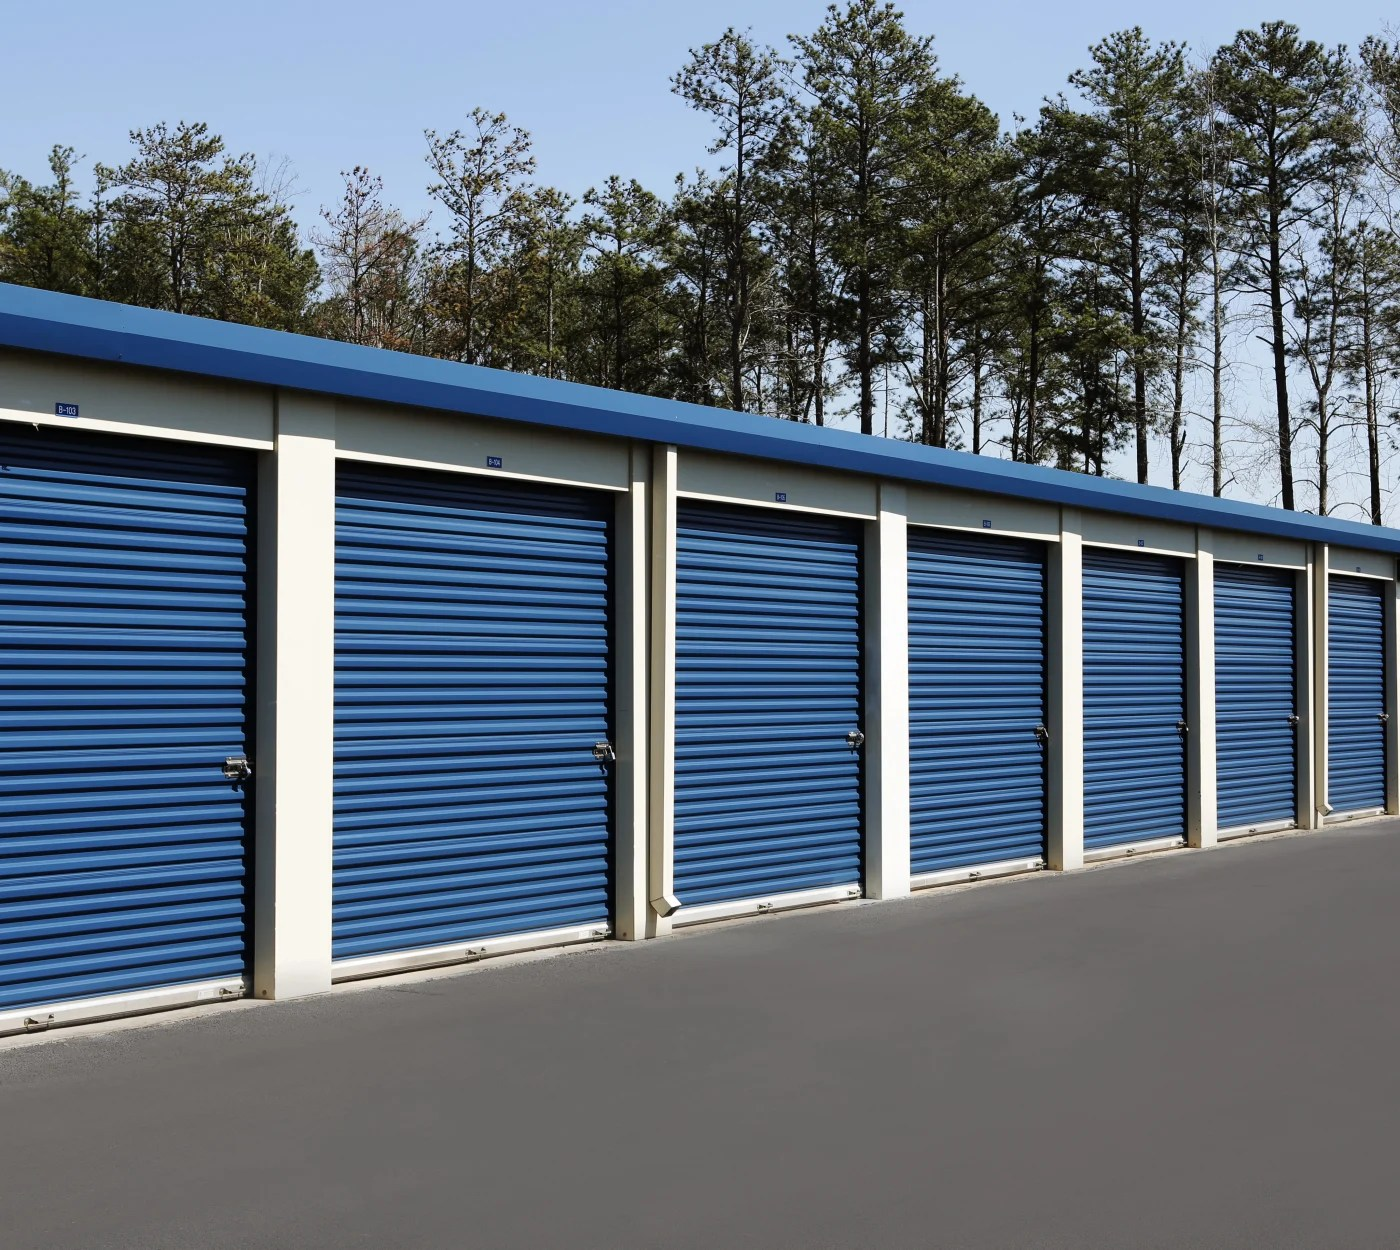 Storage Unit Cost Self Storage Woodstock Ga Storage Unit Sizes And Prices